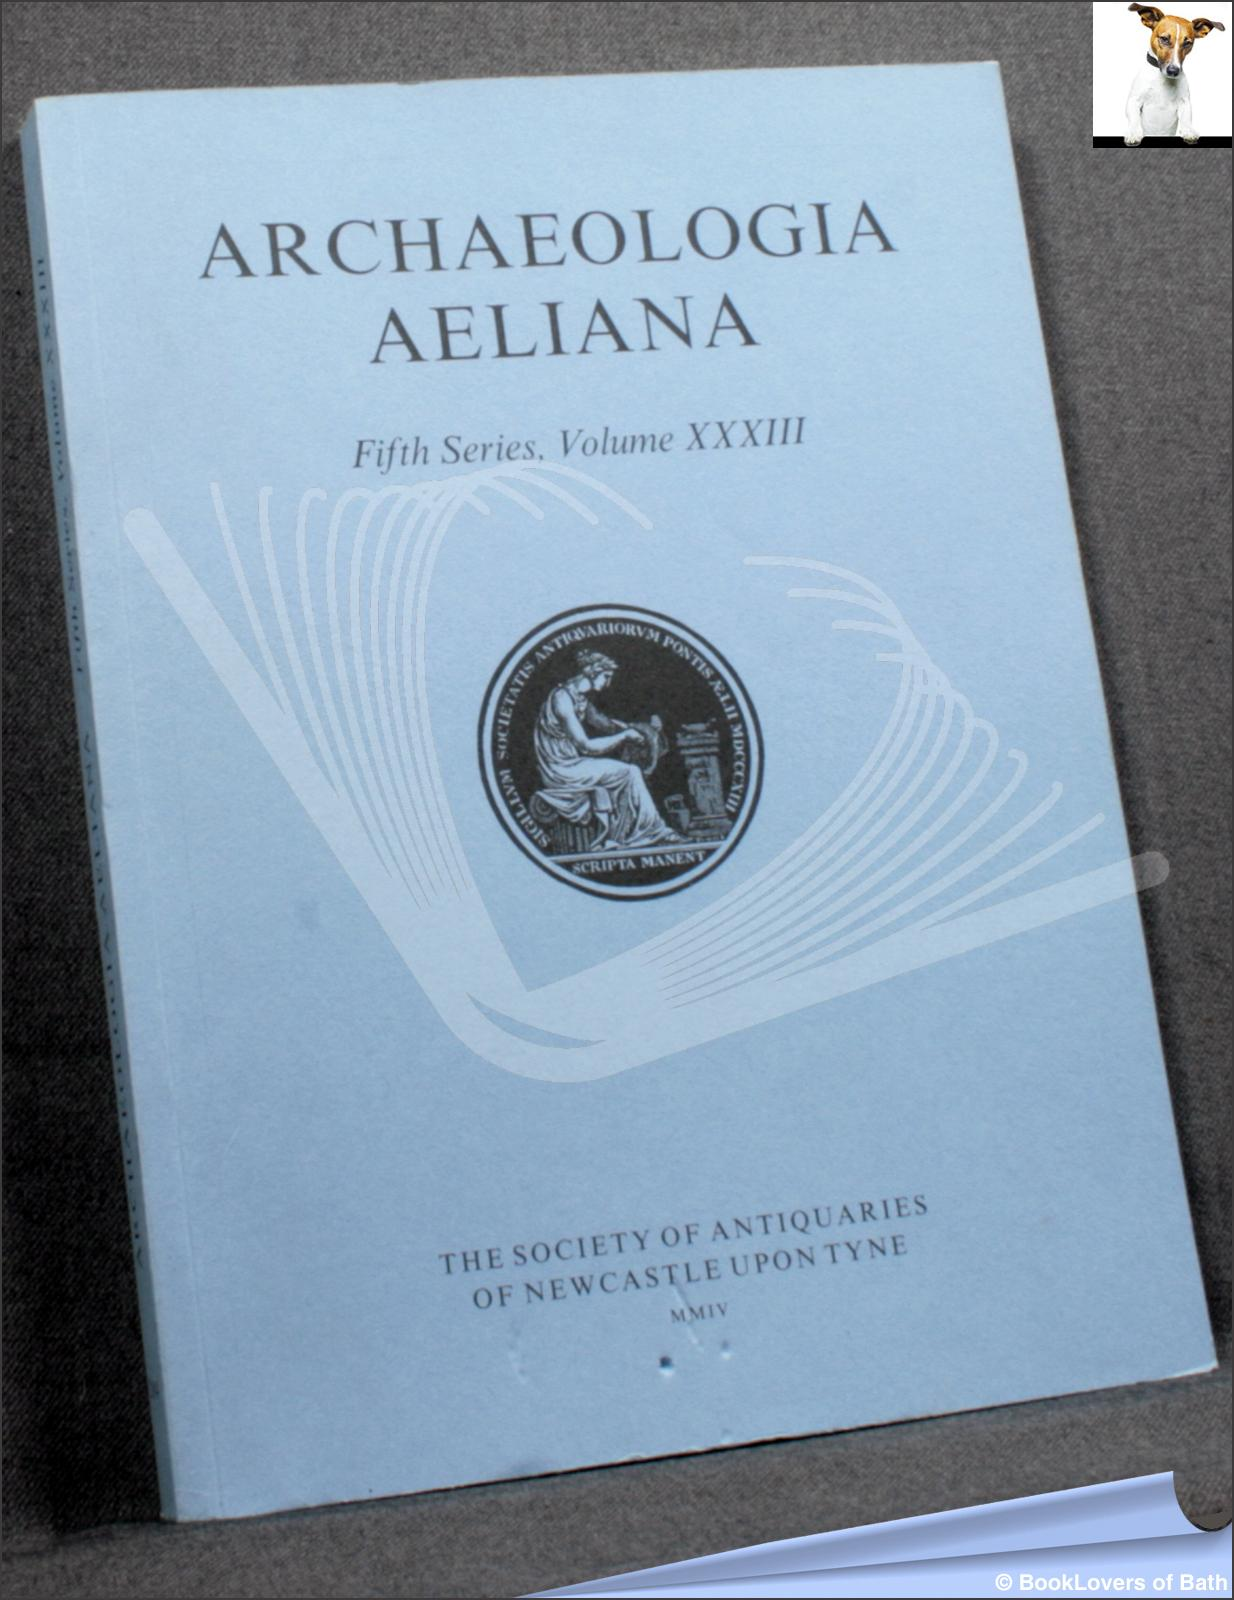 Archaeologia Aeliana: Miscellaneous Tracts Relating to Antiquity Fifth Series, Volume XXXIII - Anon.